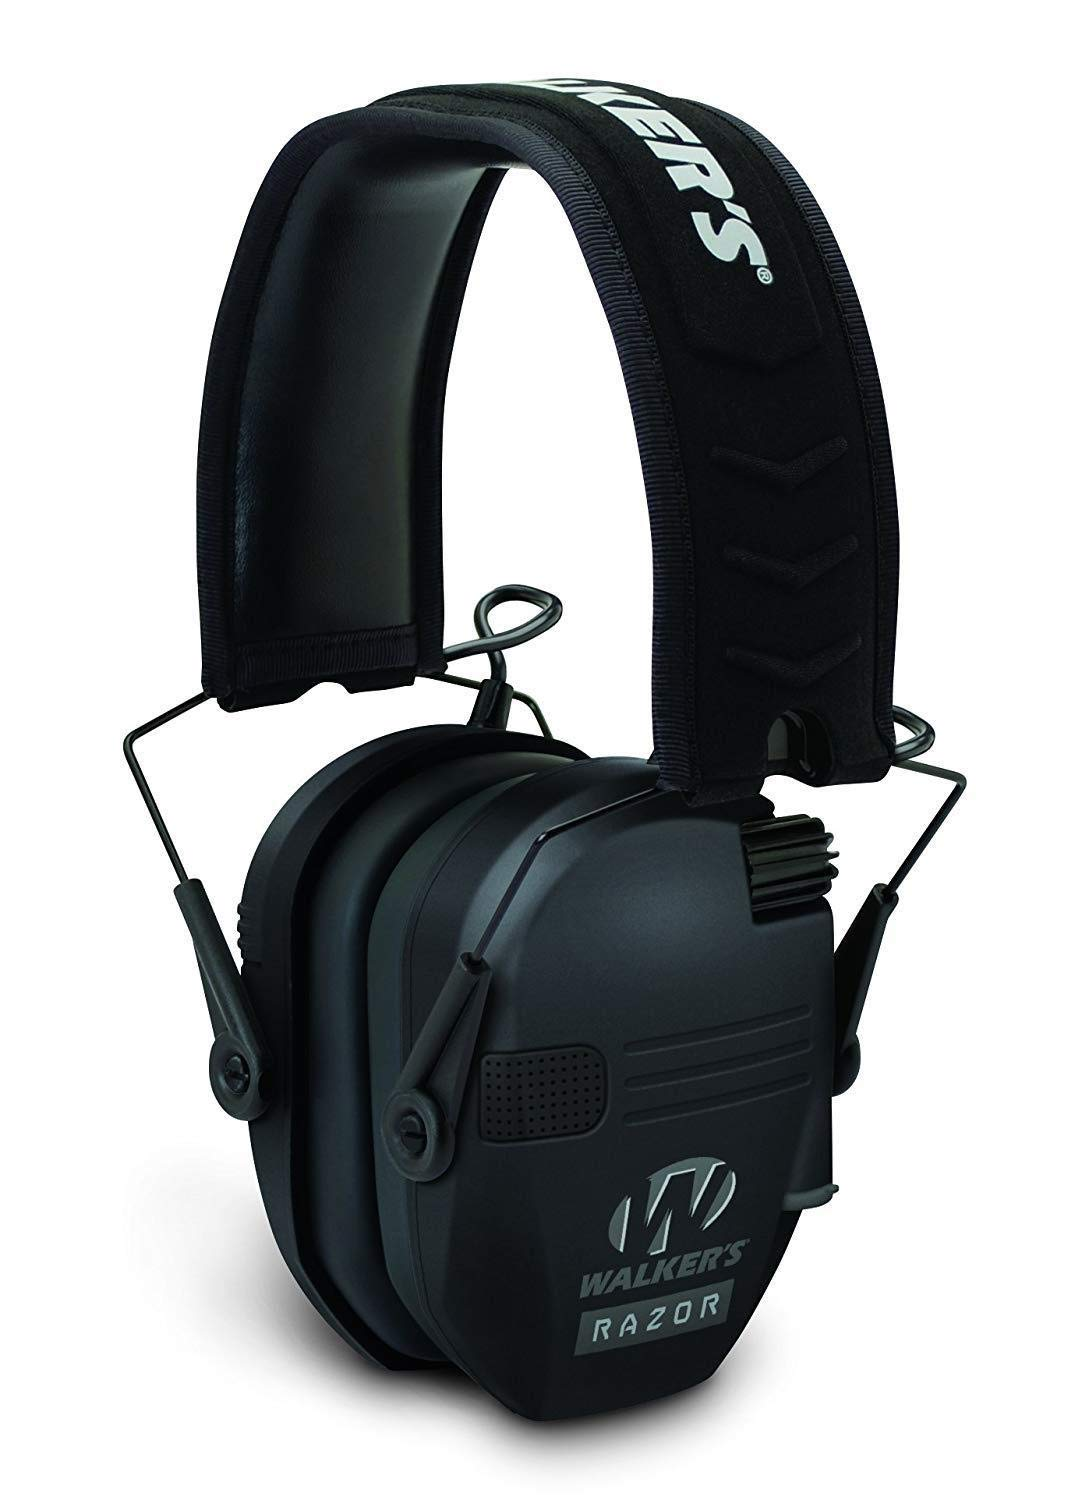 Walkers Razor Slim Electronic Shooting Hearing Protection Muff (Black) with Protective Case by Walkers (Image #4)